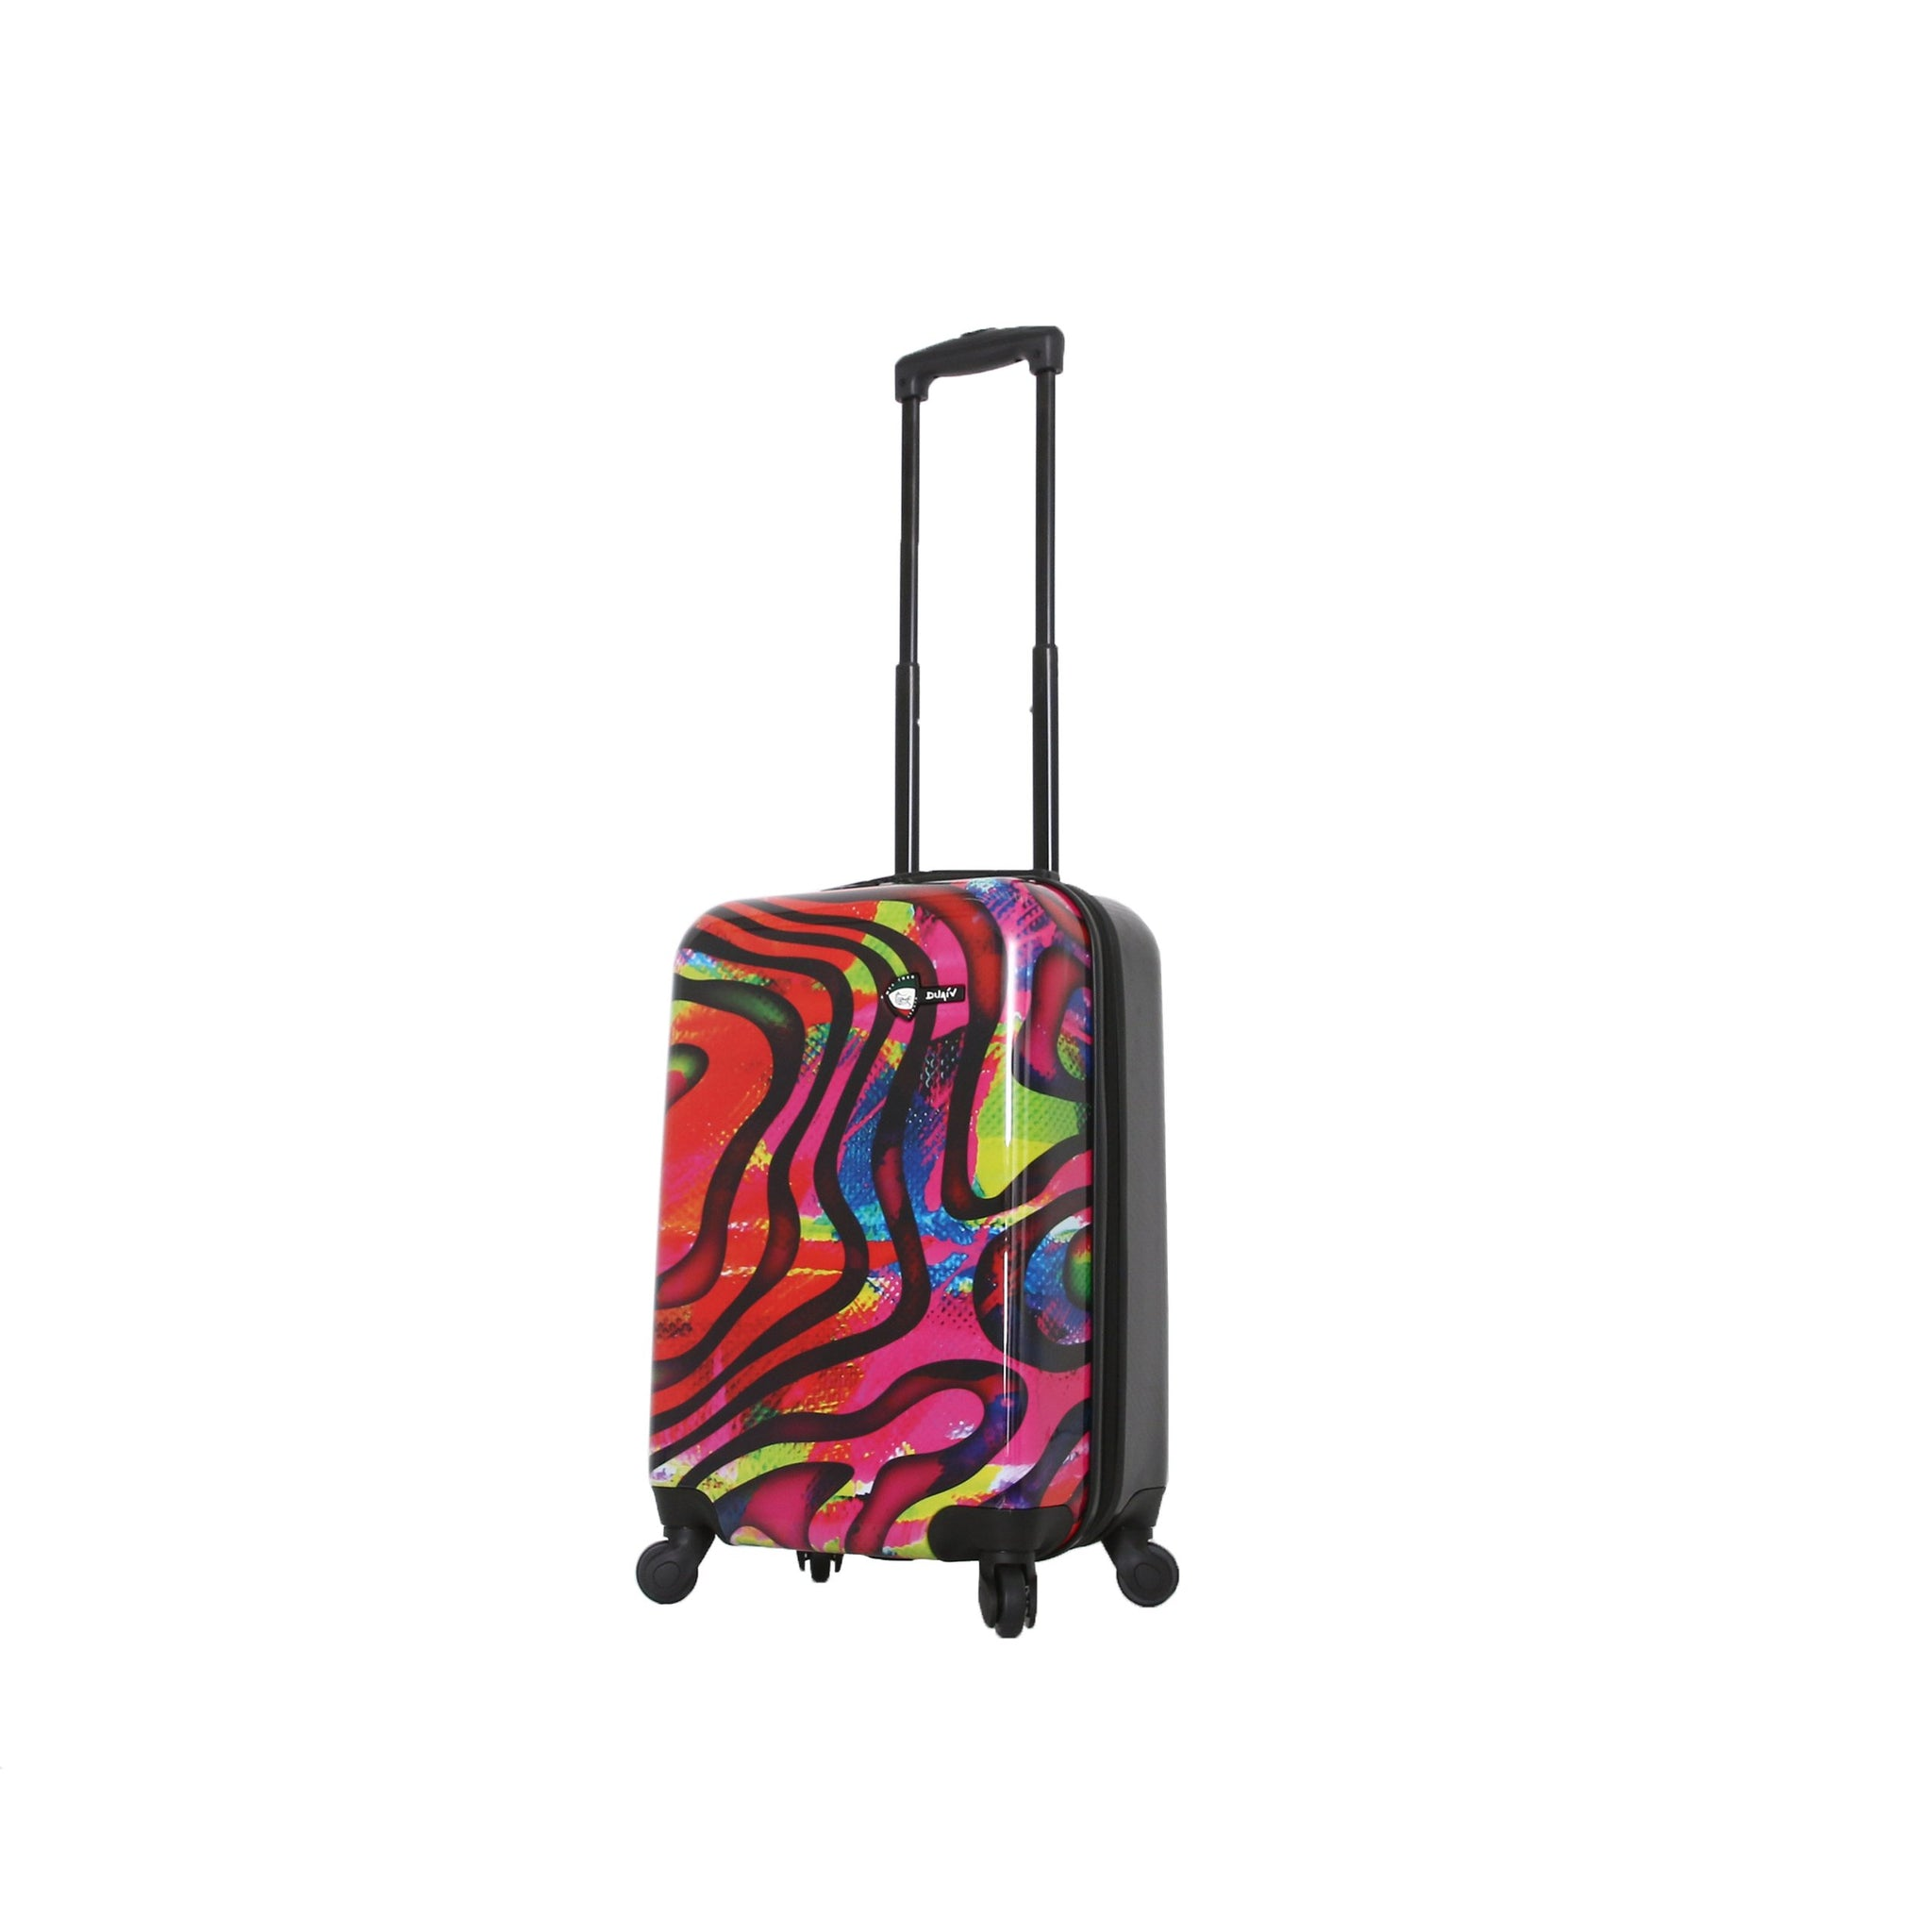 "Duaiv Zebre 20"" Carry On Luggage"